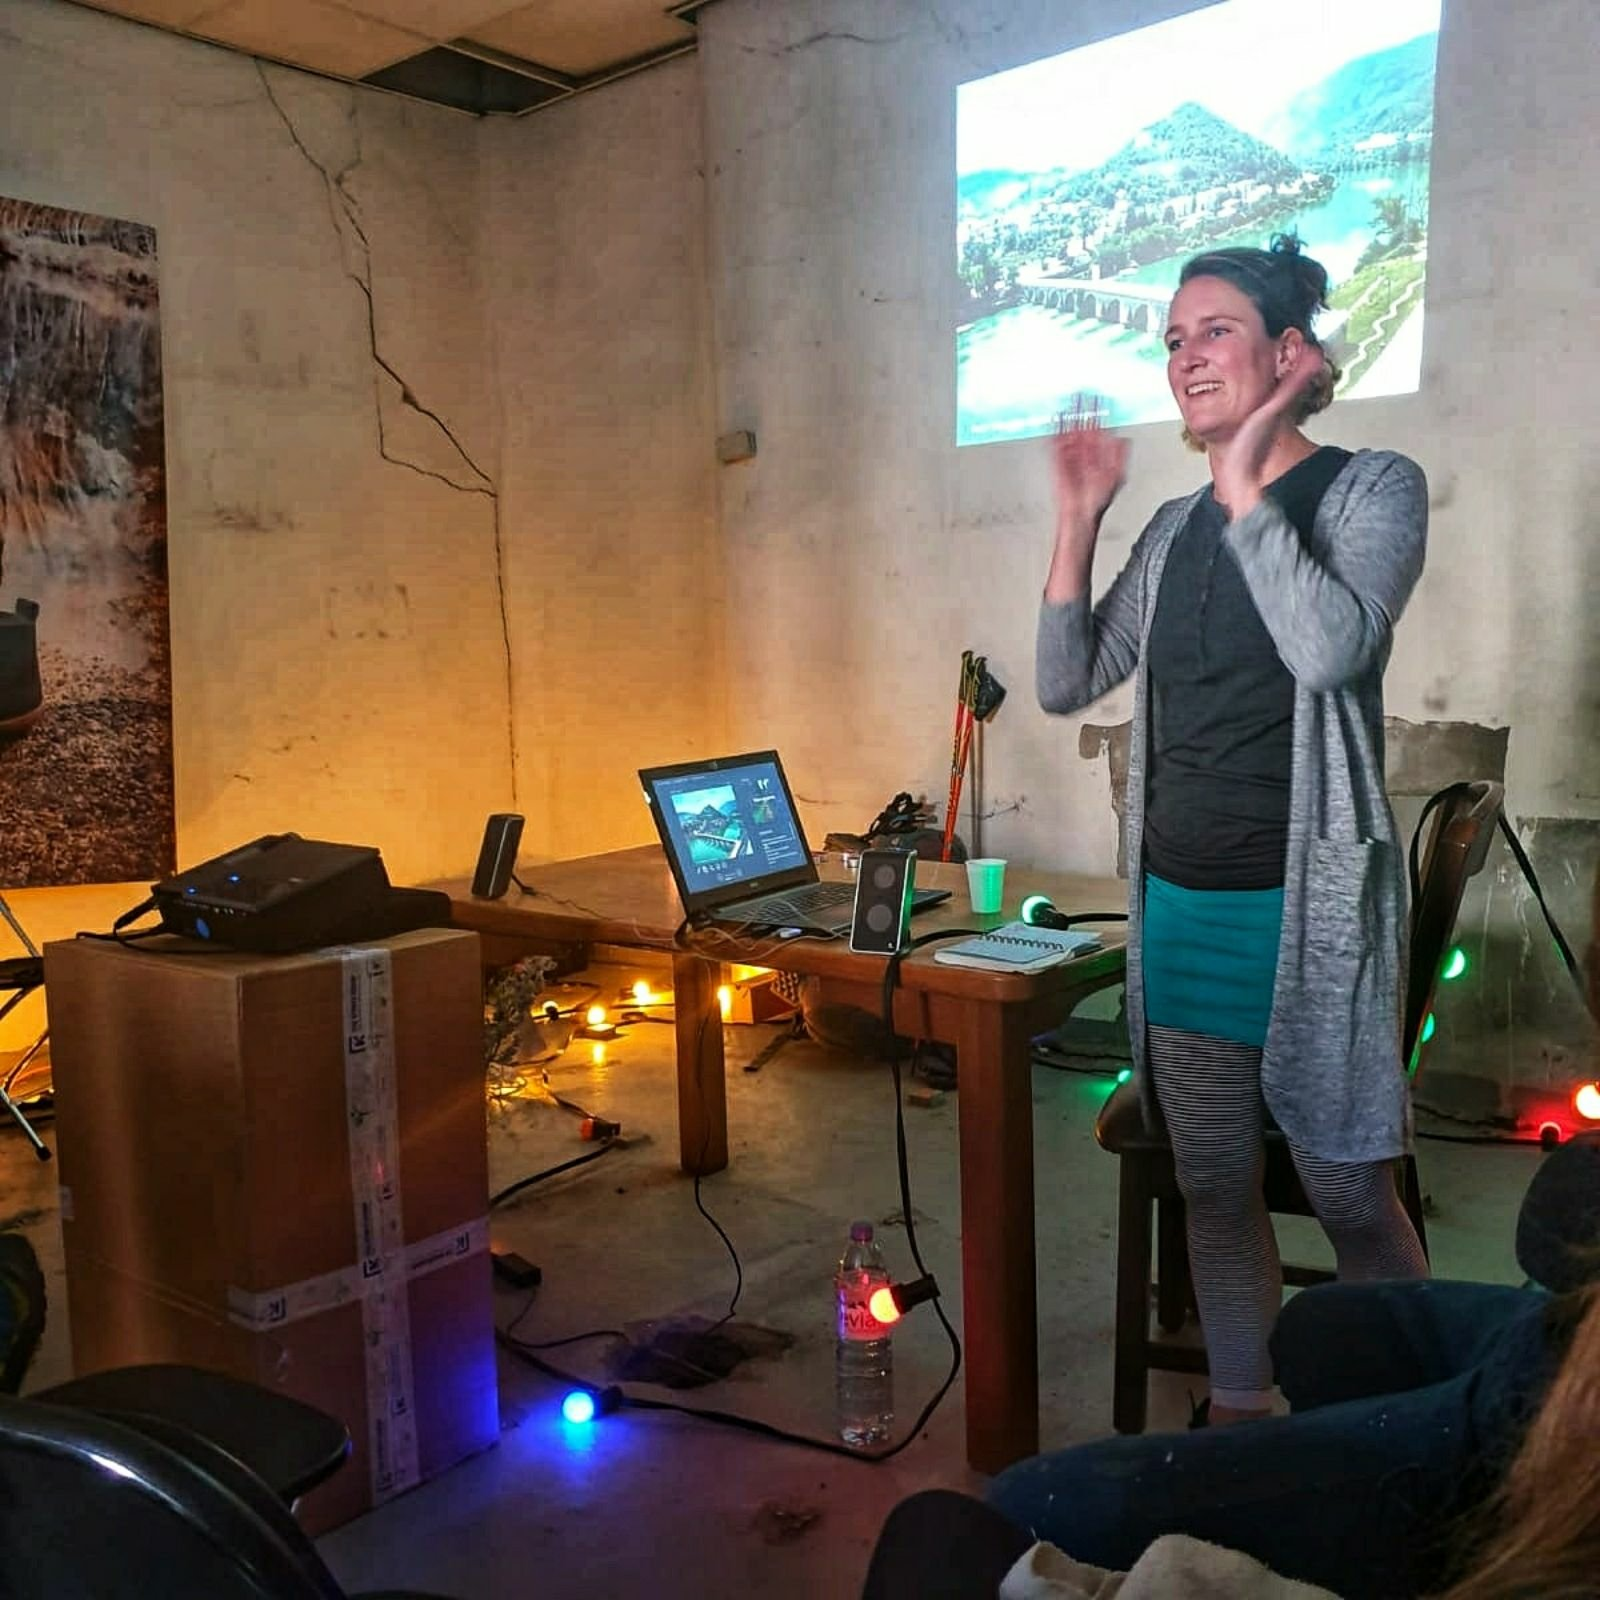 Eva Smeele gives a presentation for THE TREK BAREFOOT about Hiking the Balkans on FiveFingers